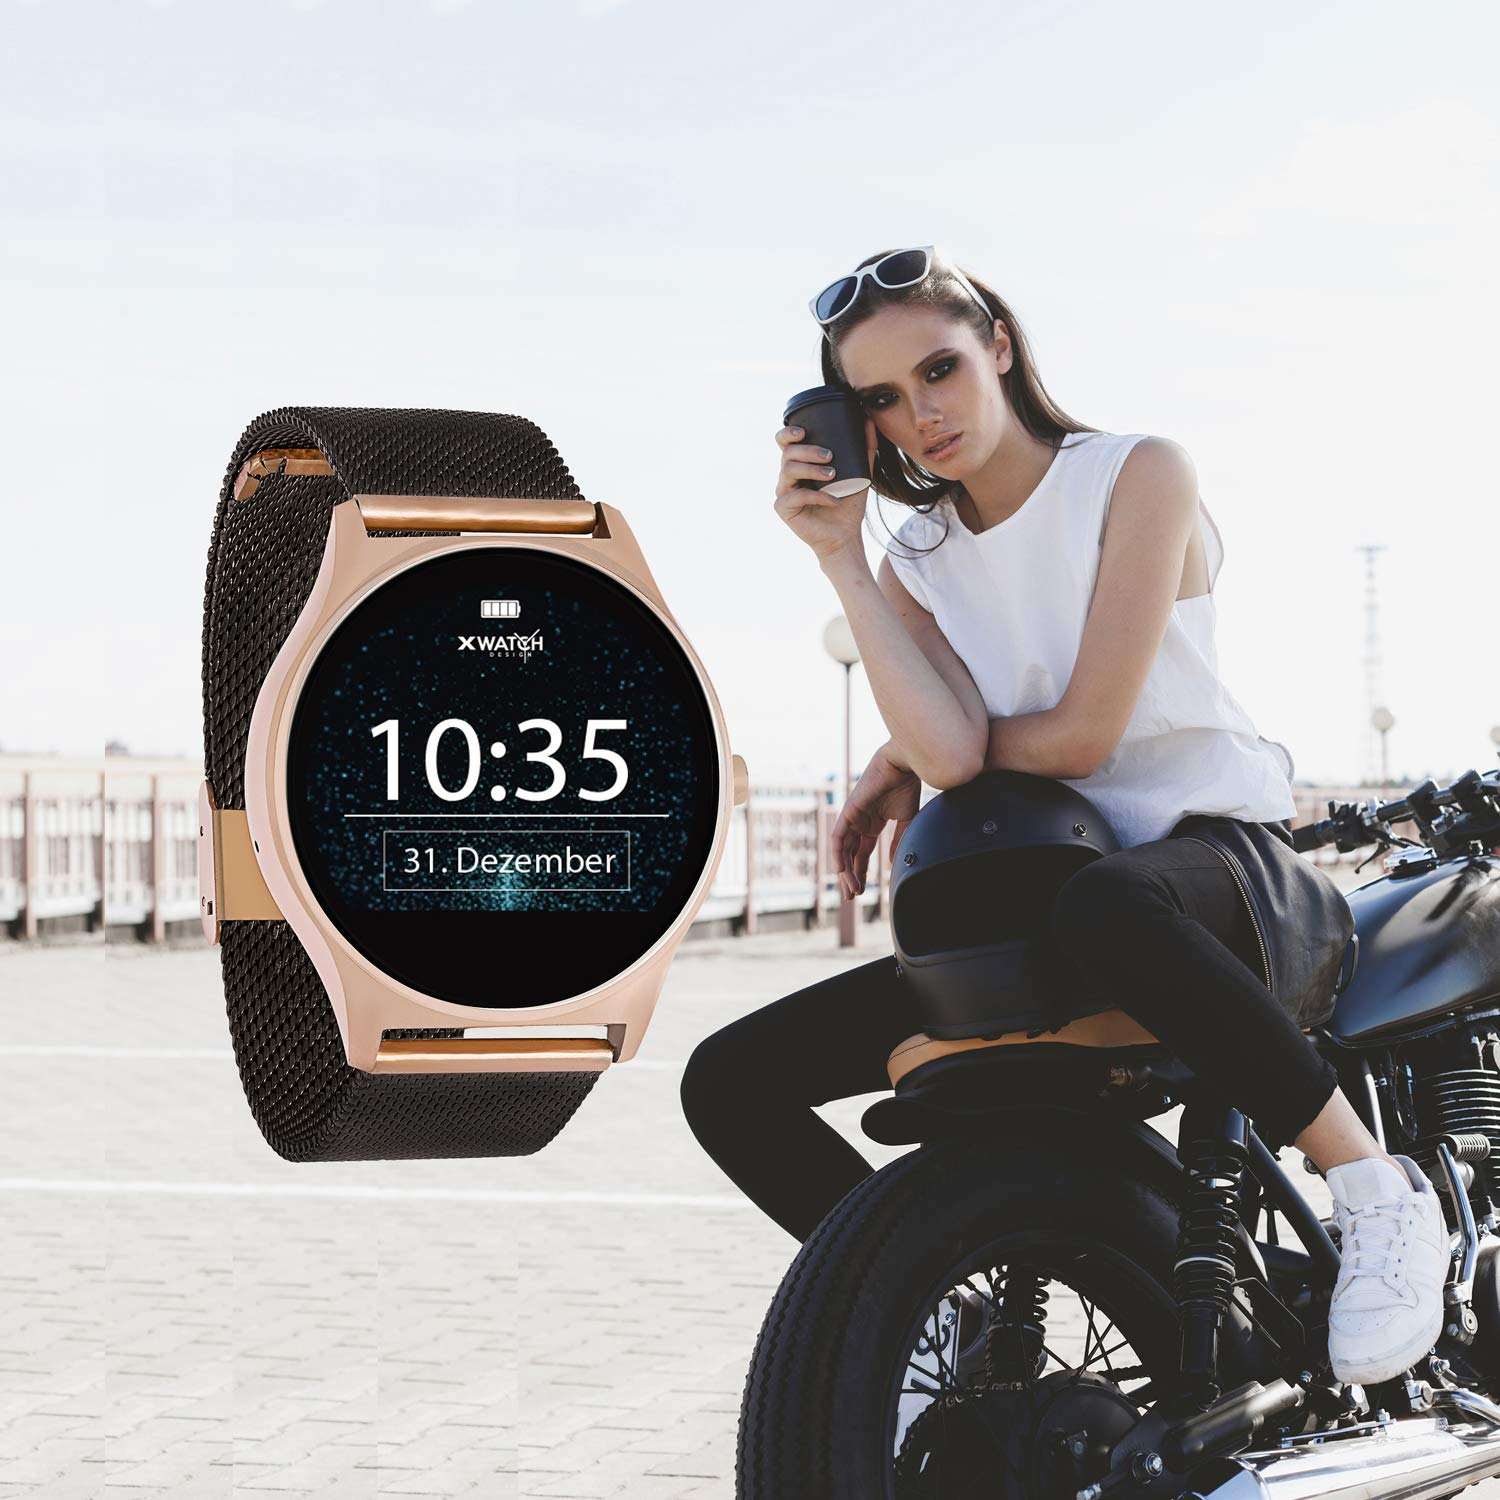 X-Watch Damen Smartwatch - die beliebtesten Damen Smartwatches